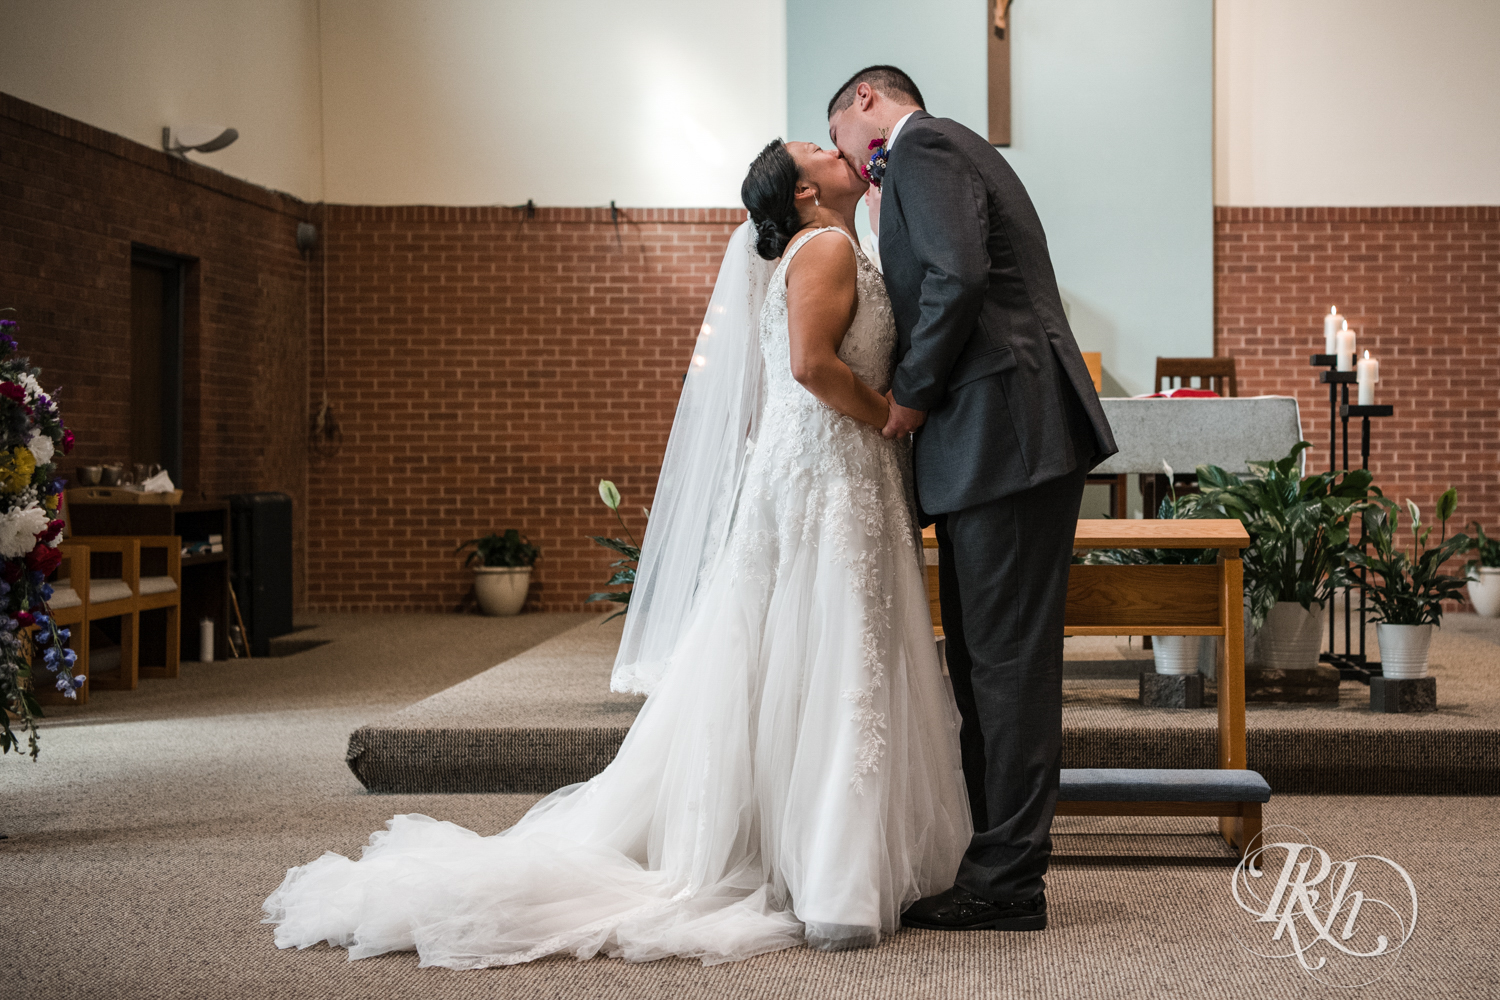 Jana and Paul - Minnesota Wedding Photography - Kellerman's Event Center - RKH Images  (45 of 77).jpg